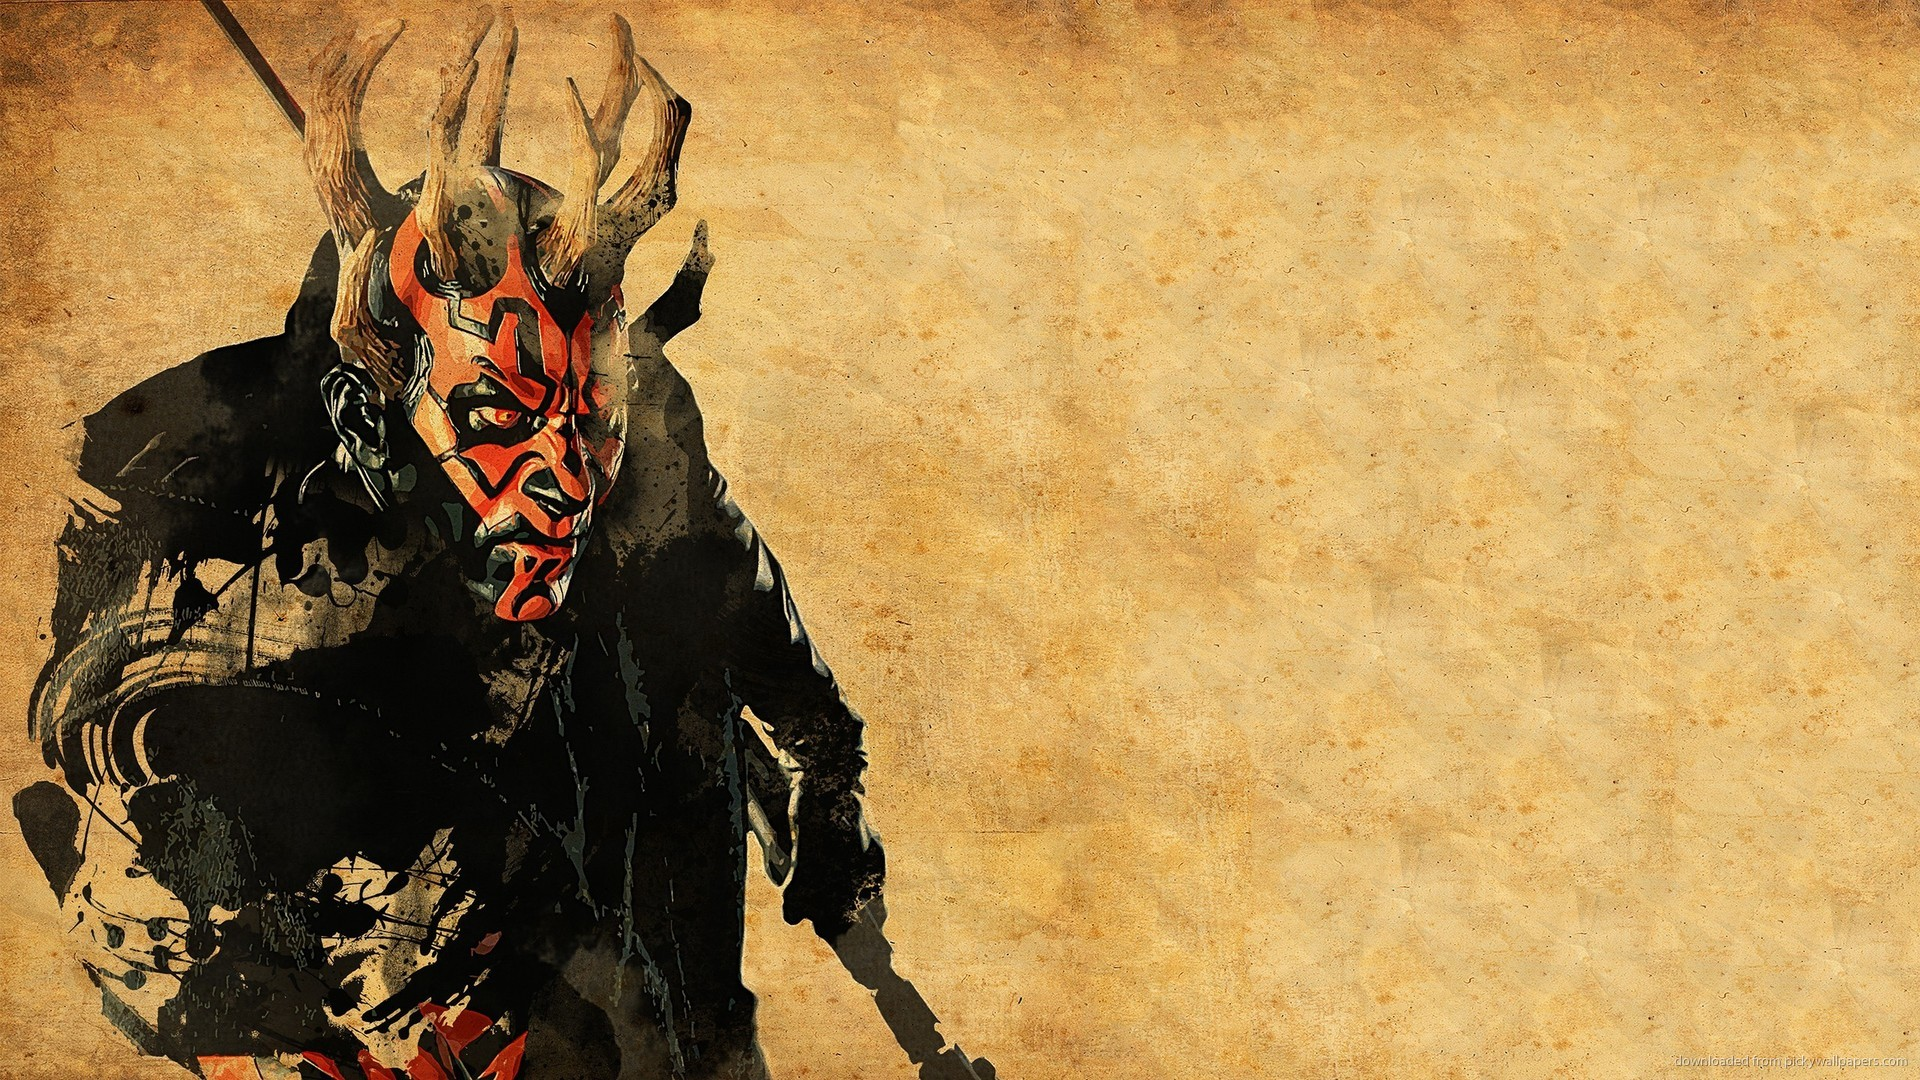 Horned Darth Maul picture